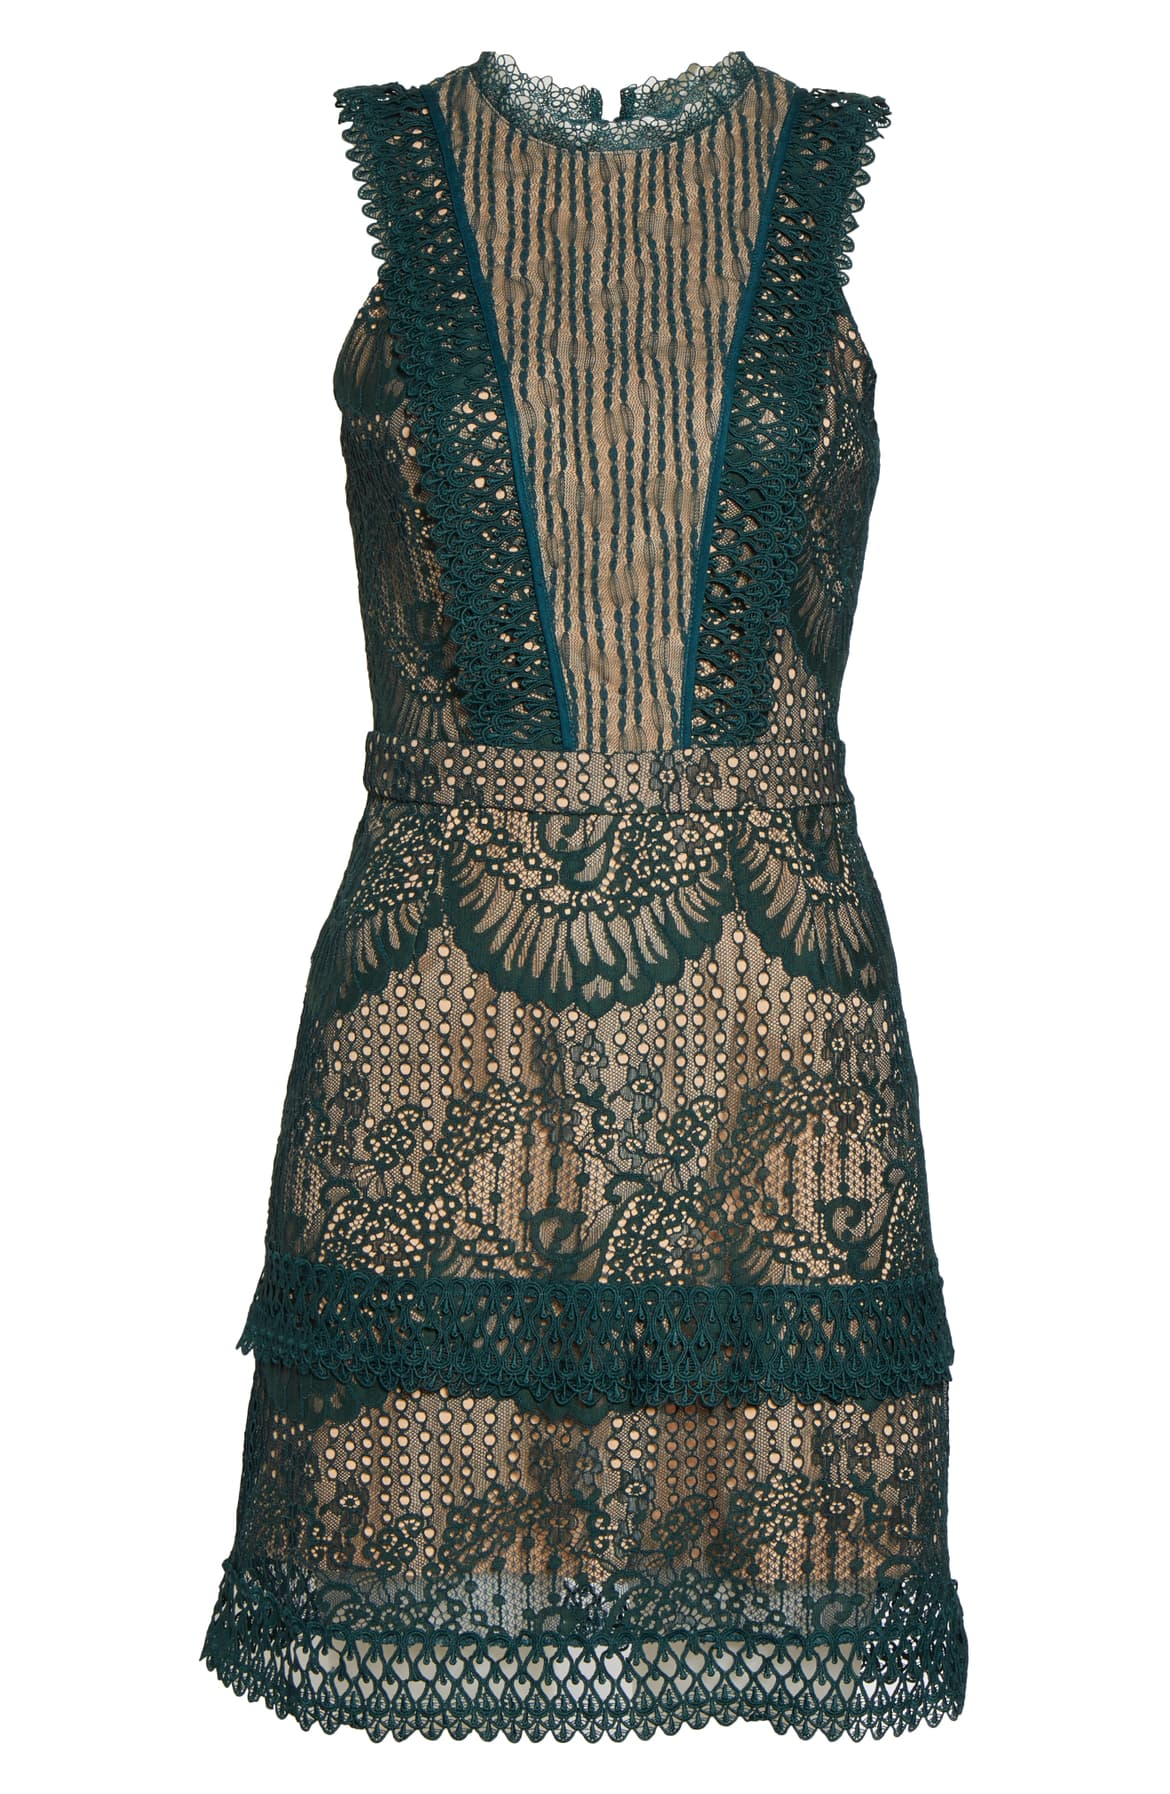 Intricate lacework highlighted by a contrast lining softens and sharpens the look of this sleeveless minidress finished with guipure trim. $115 -{ }Shop the Look{ }(Image: Nordstrom){ }